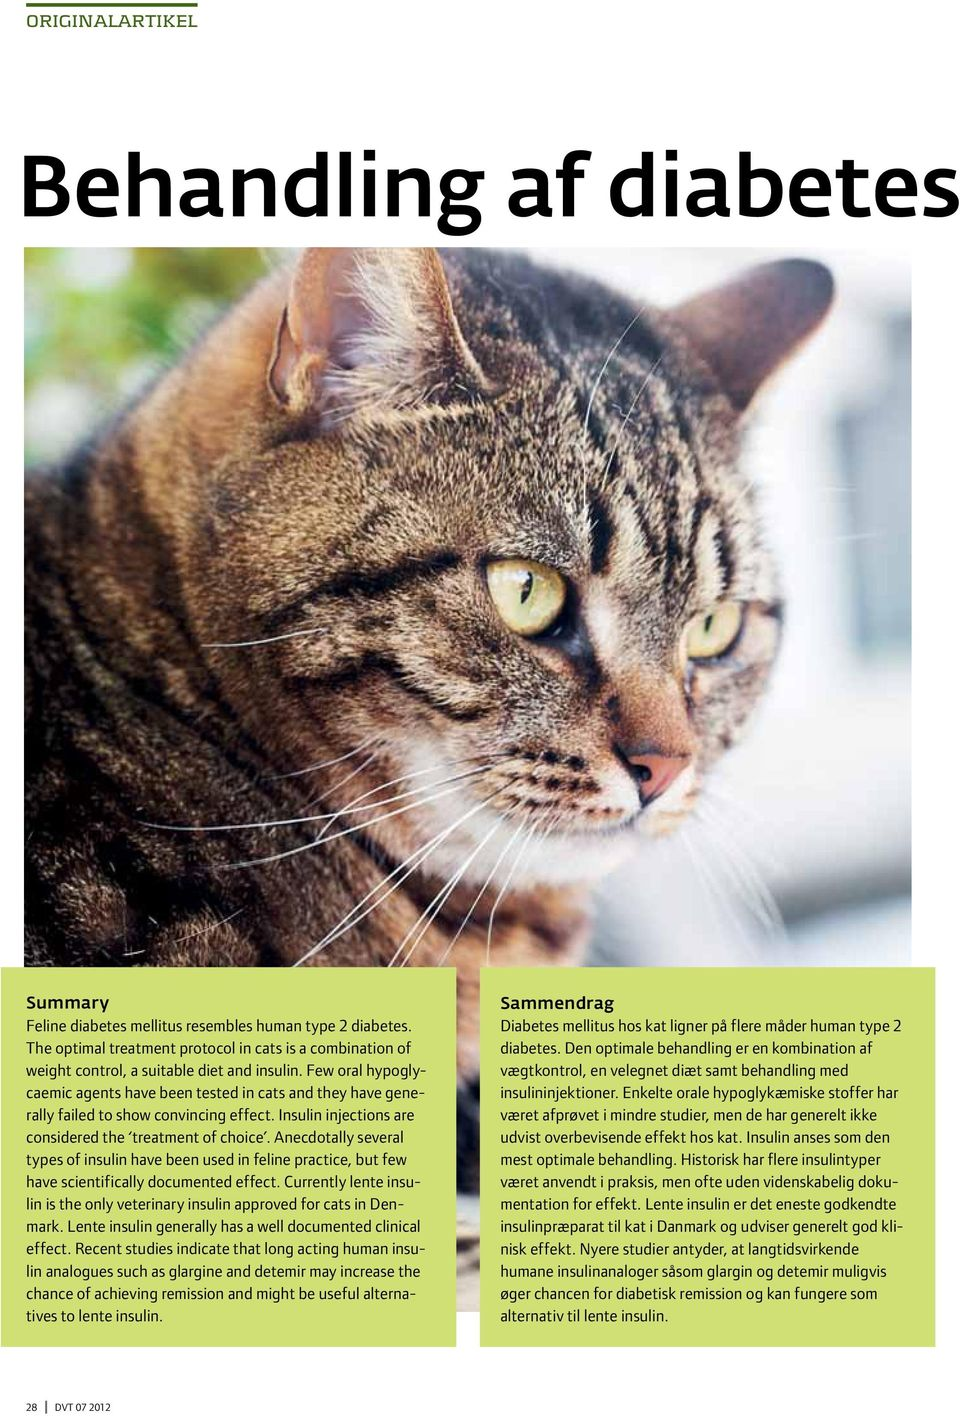 Few oral hypoglycaemic agents have been tested in cats and they have generally failed to show convincing effect. Insulin injections are considered the treatment of choice.